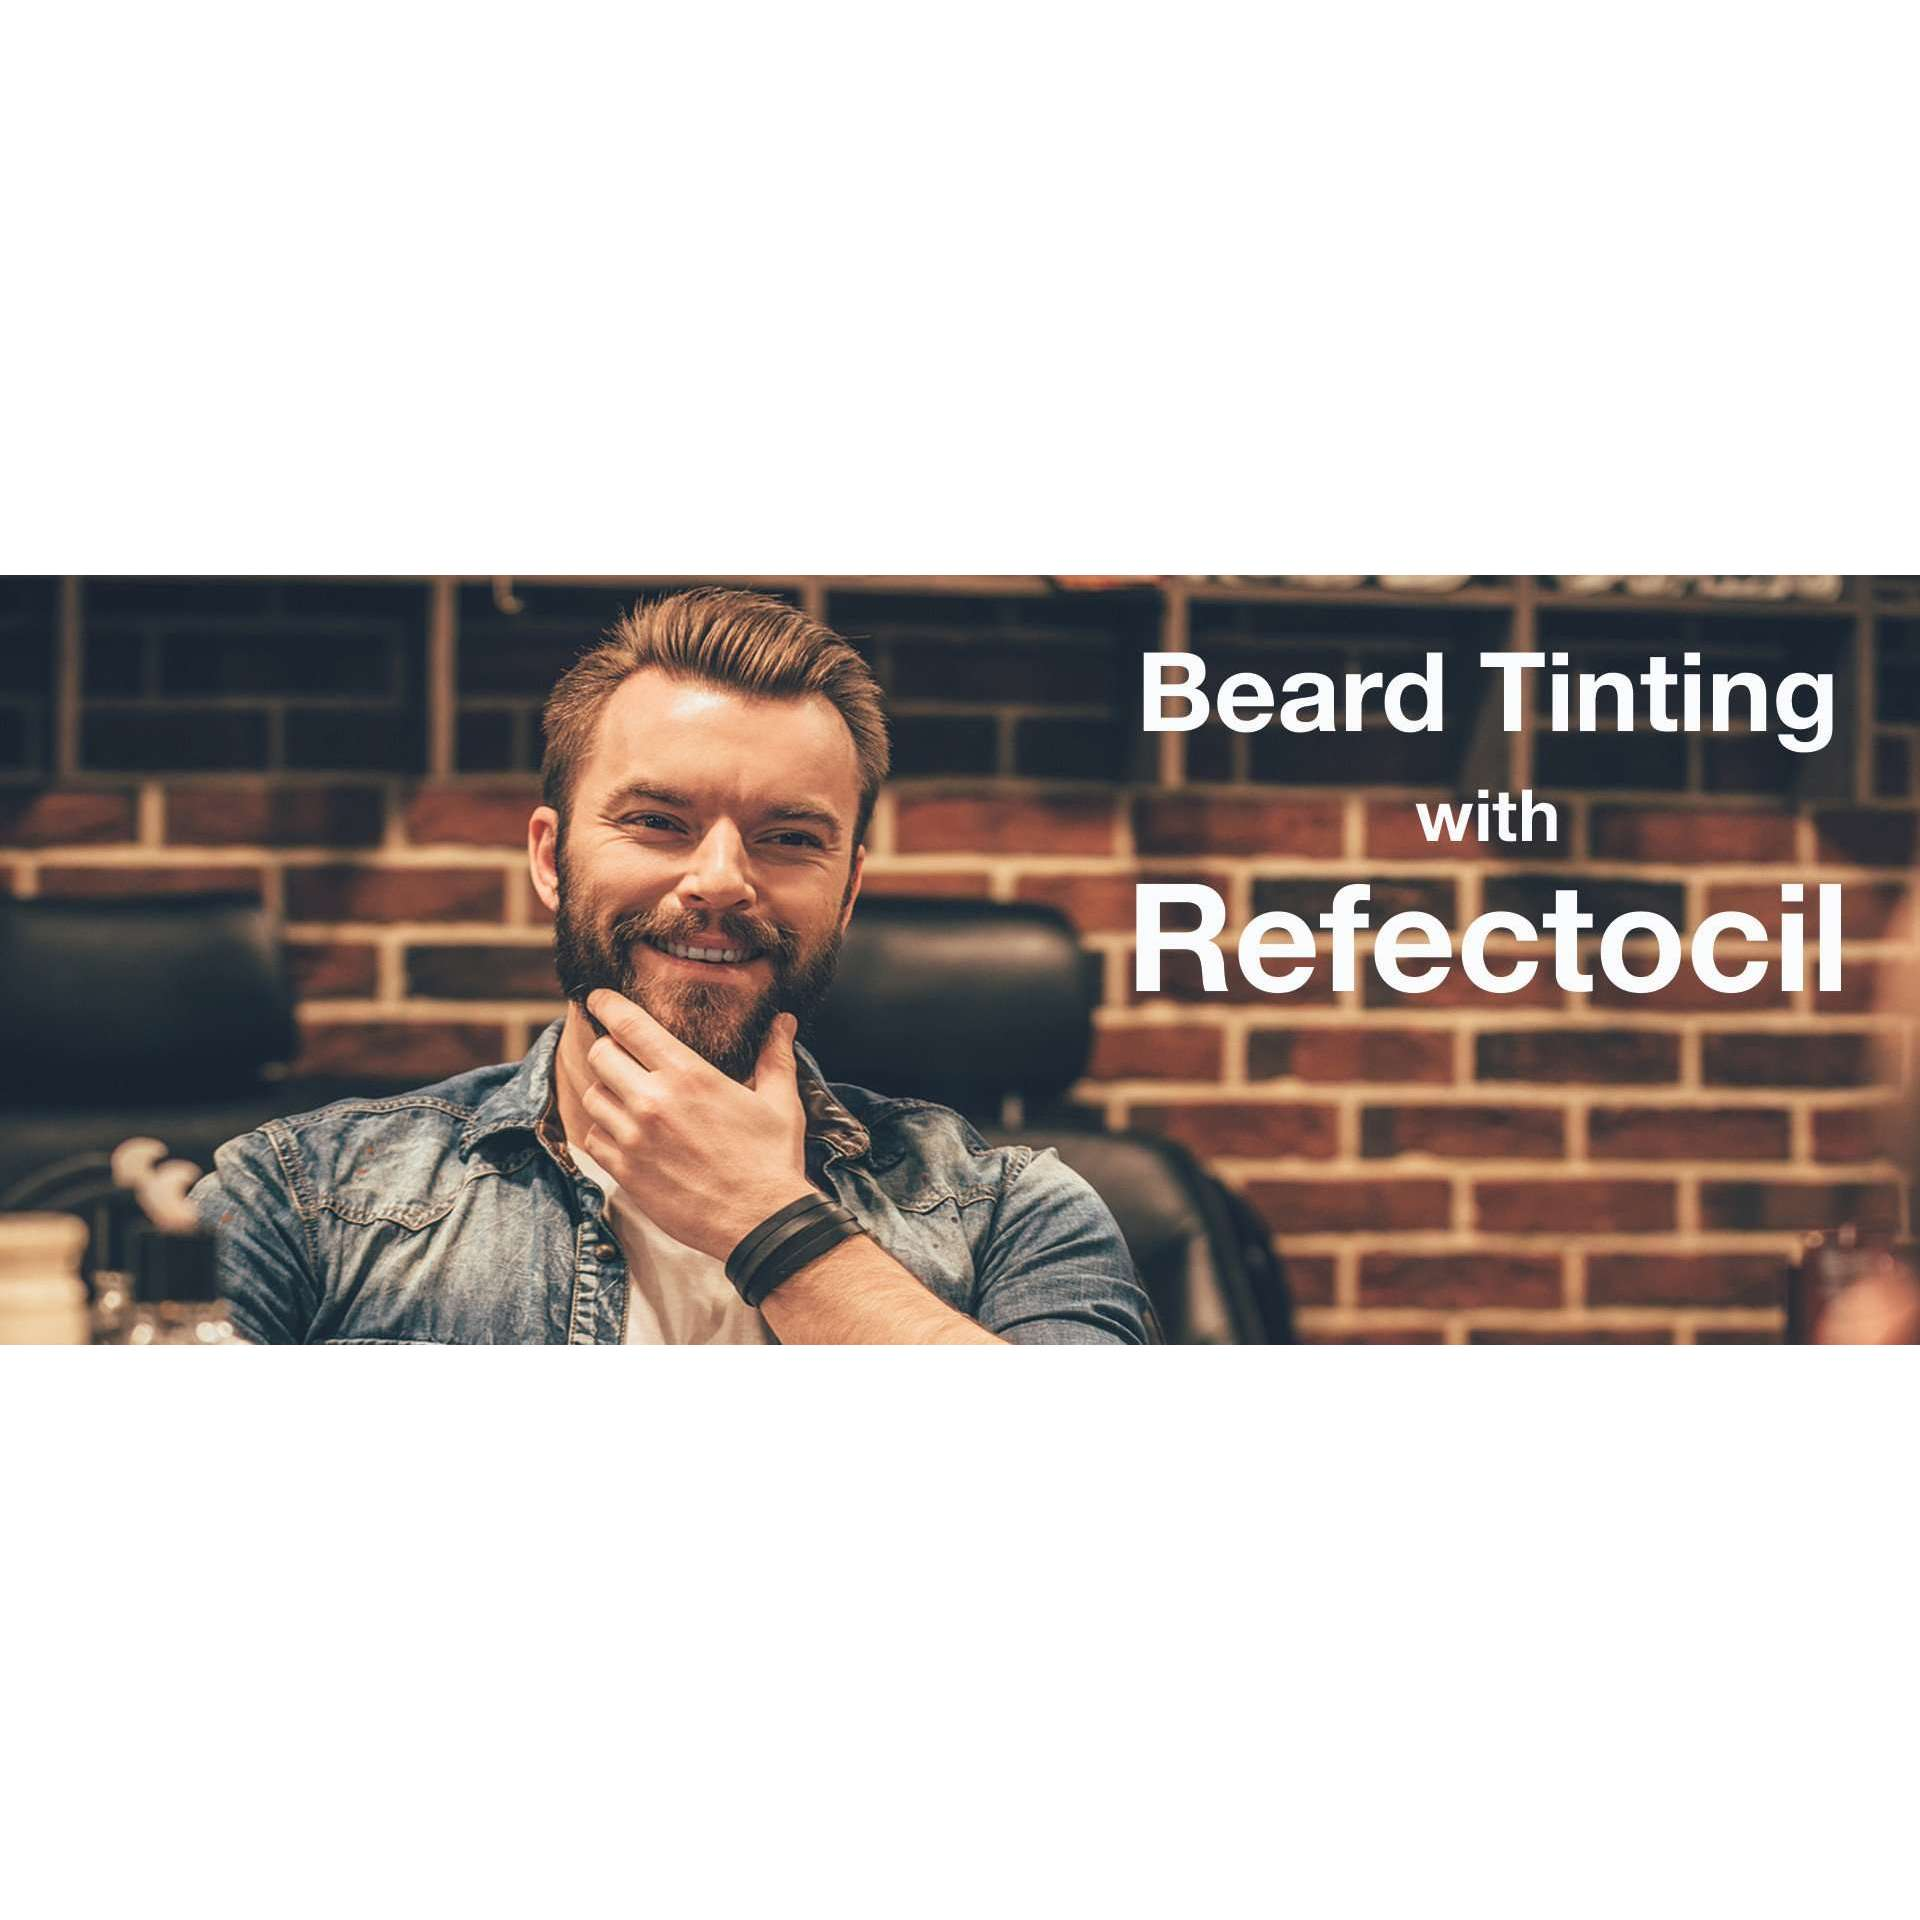 Refectocil beard kit for barbers hot brands store refectocil beard kit for barbers nvjuhfo Choice Image